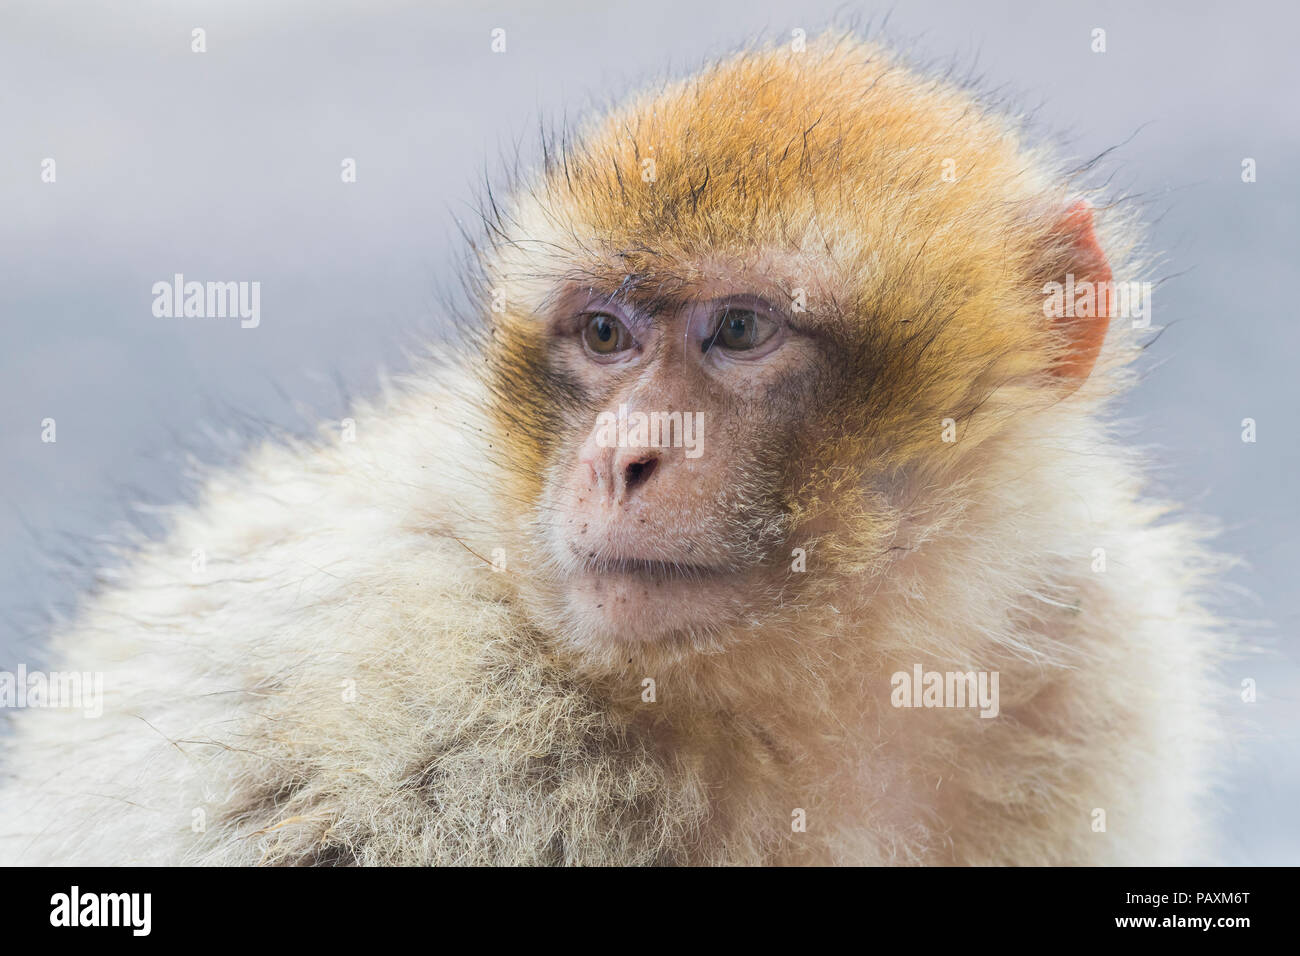 Barbary Macaque (Macaca sylvanus), juvenile close-up Stockbild